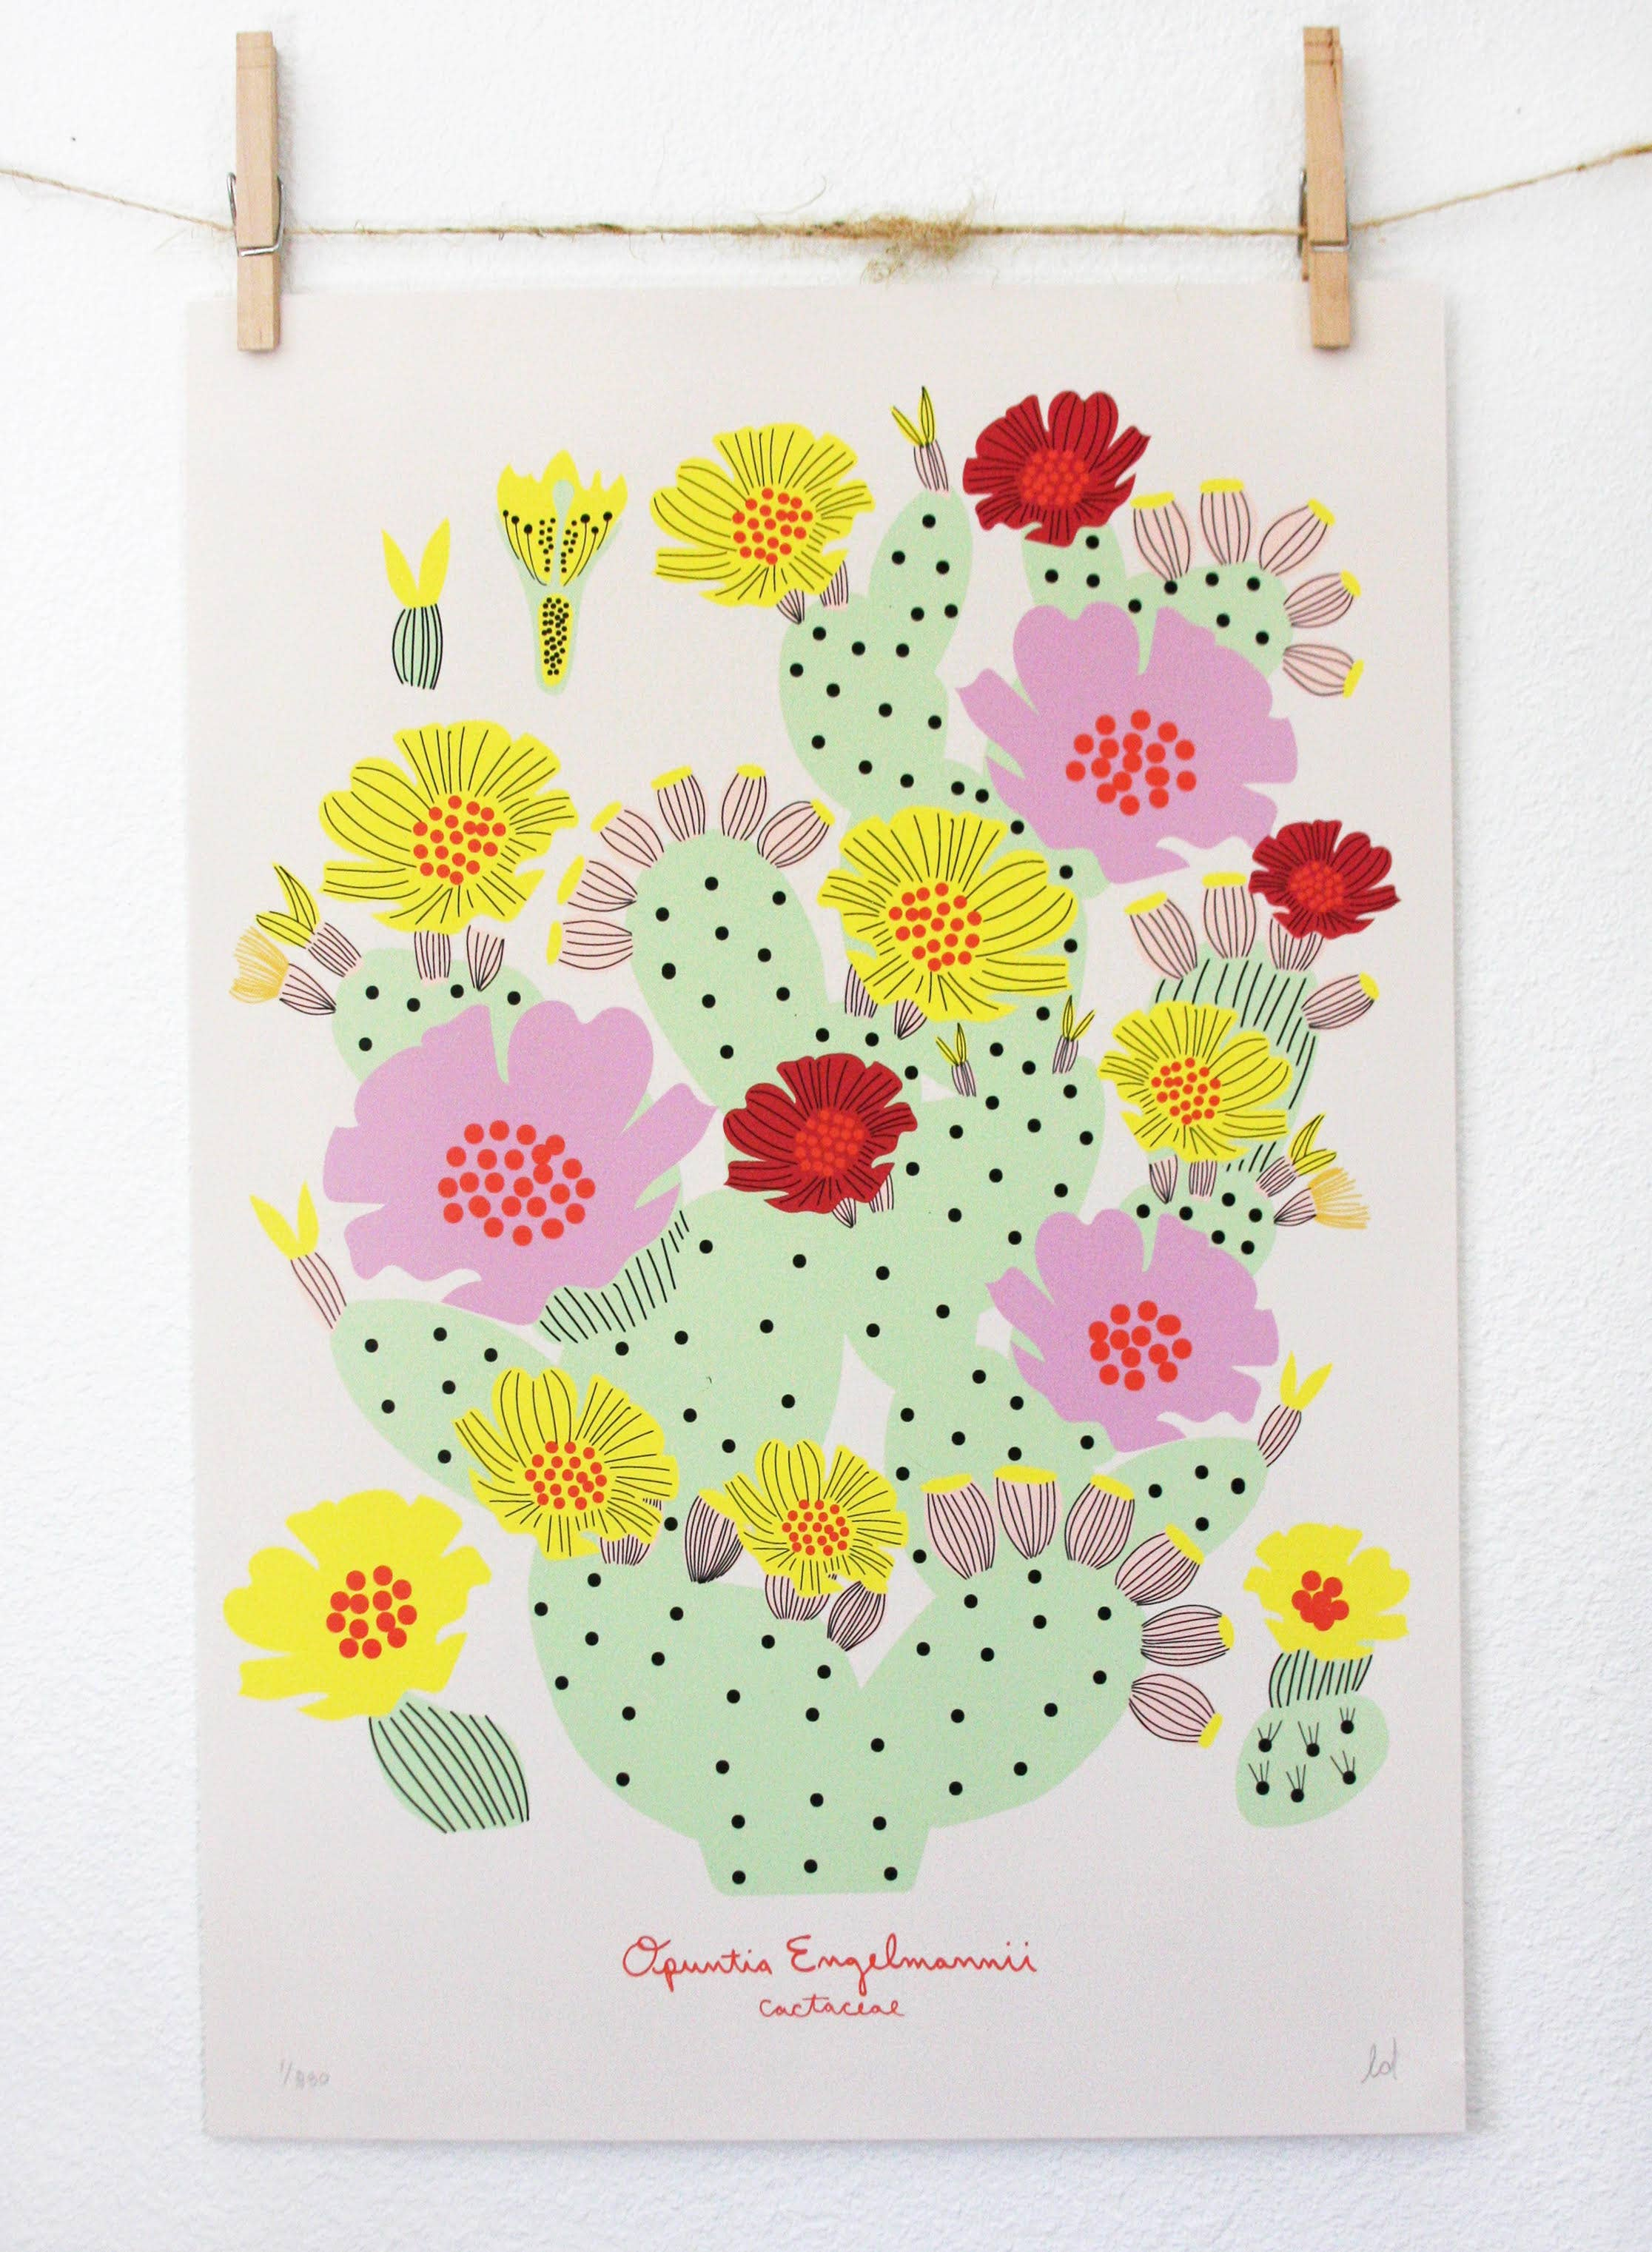 Prickly Pear Poster | Trada Marketplace